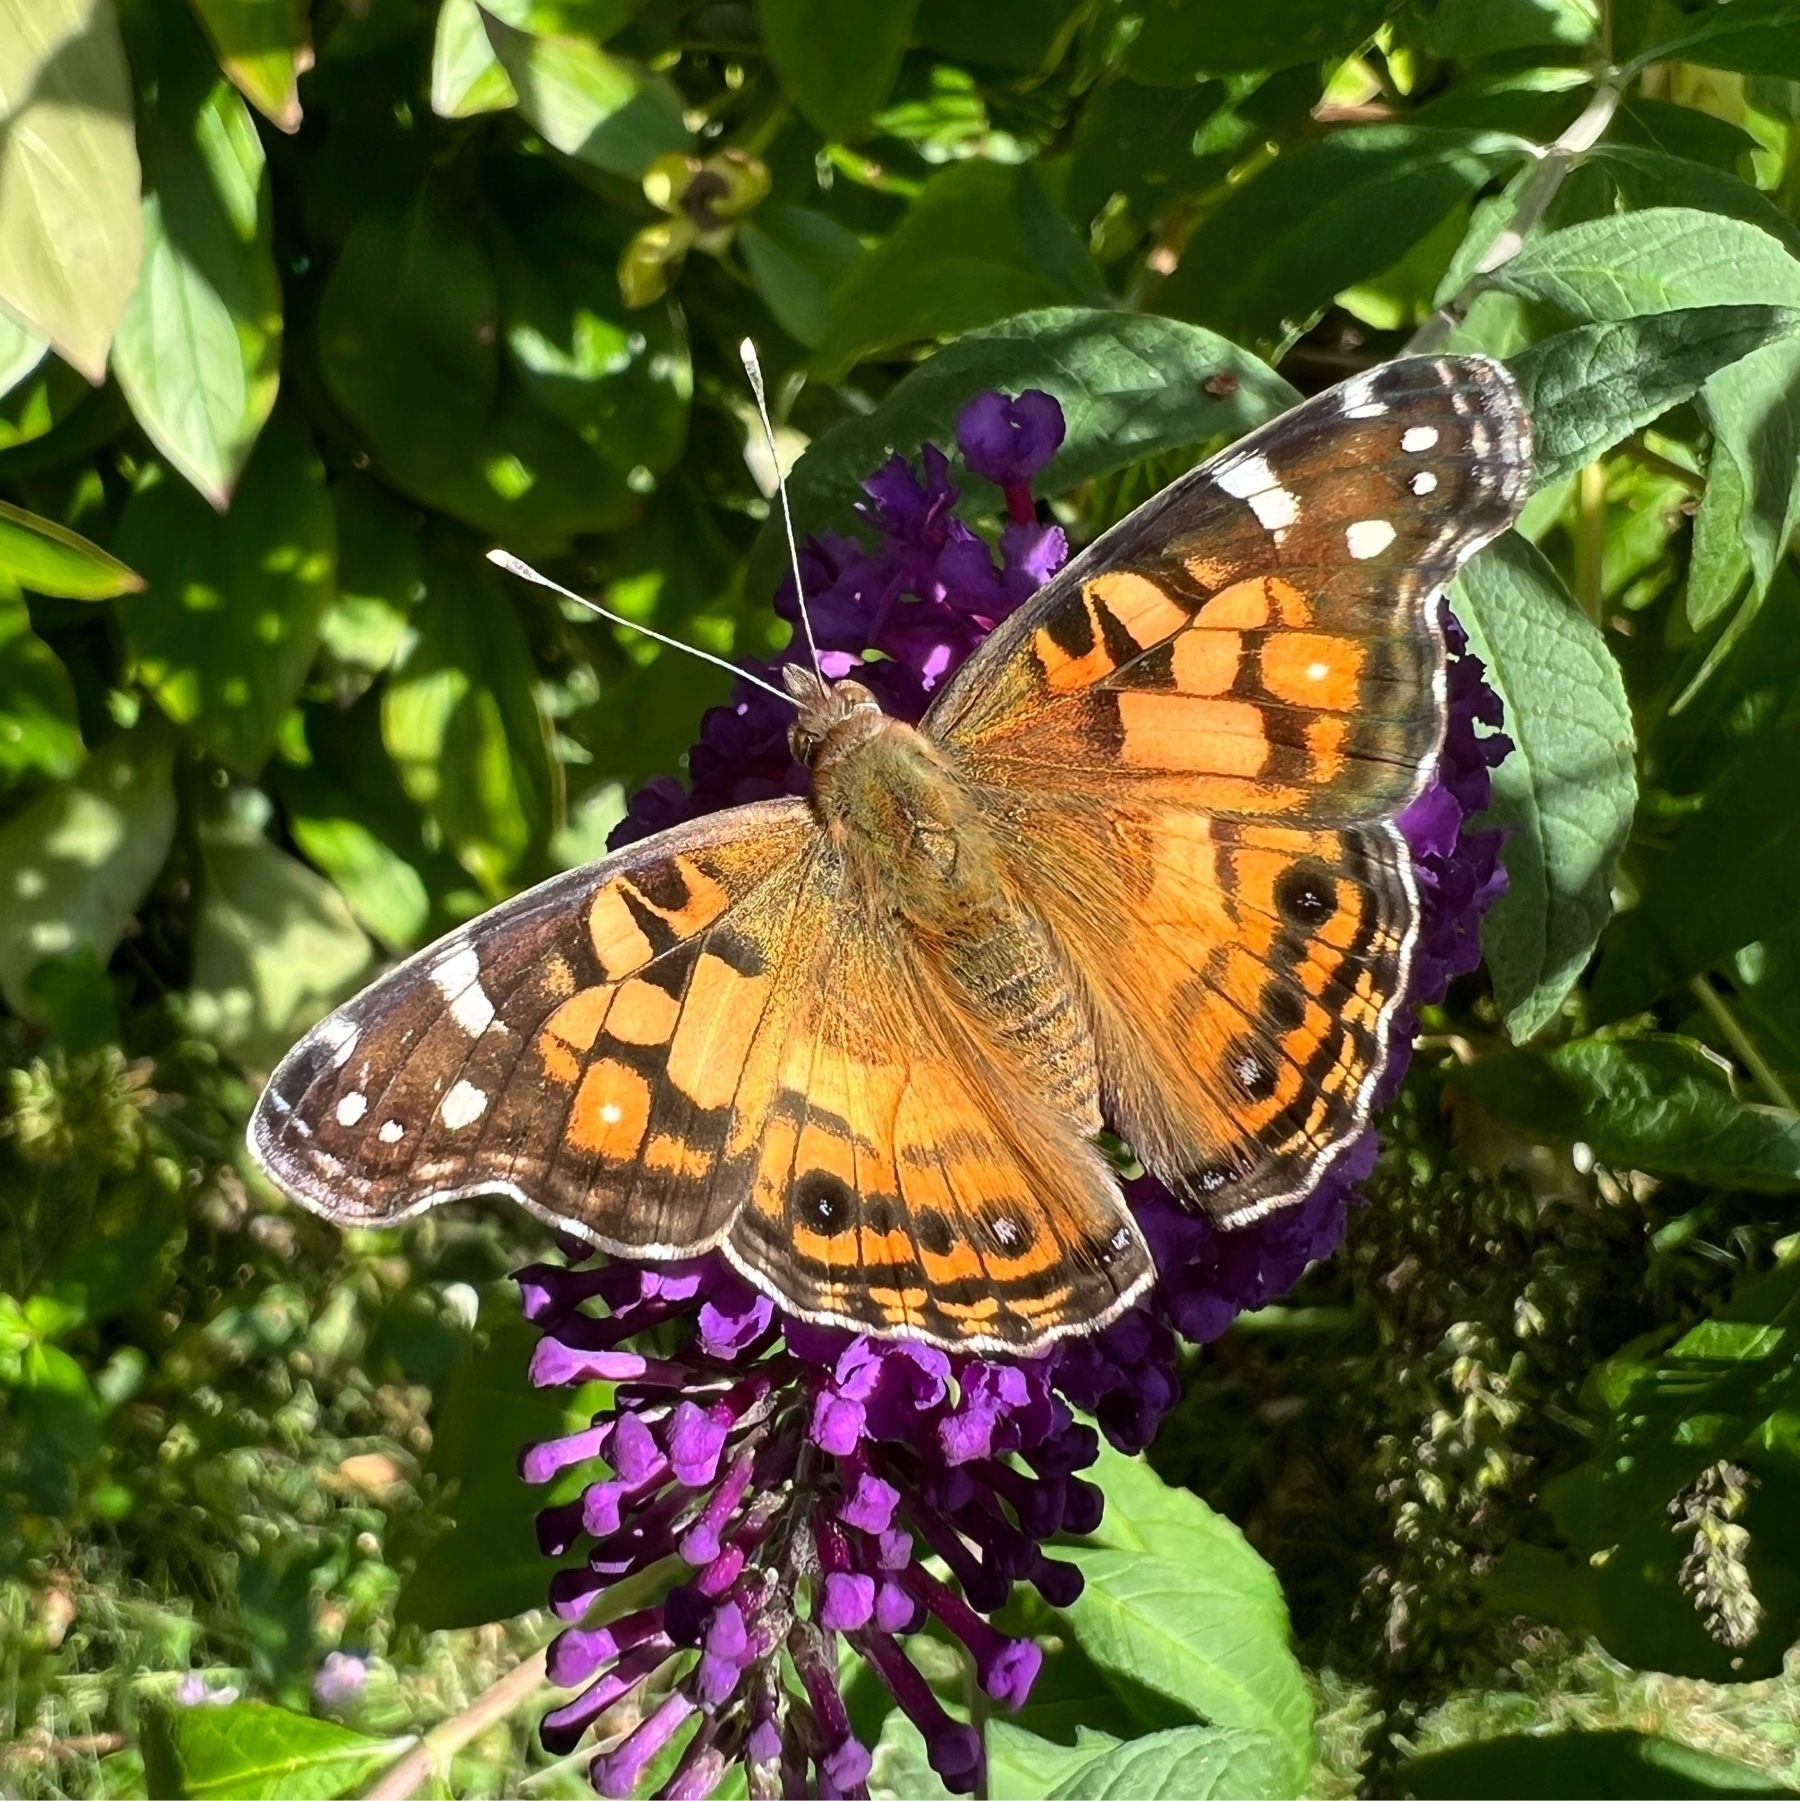 close up picture od an orange and black butterfly against a purple flower